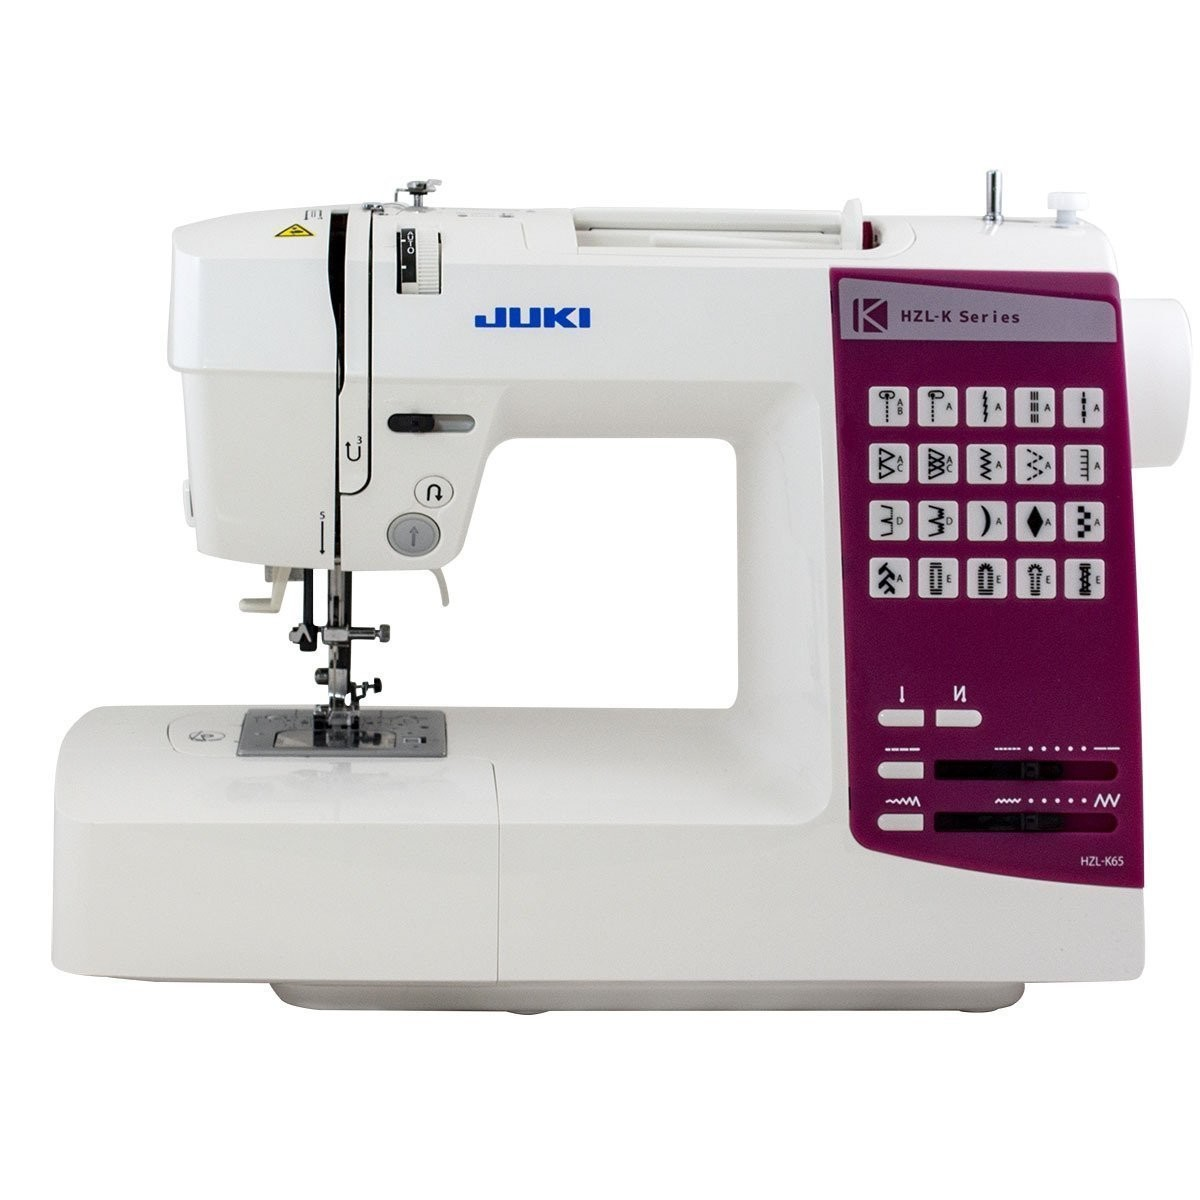 Juki HZL-K65 Computer Controlled Sewing Machine $279.00 & FREE Shipping